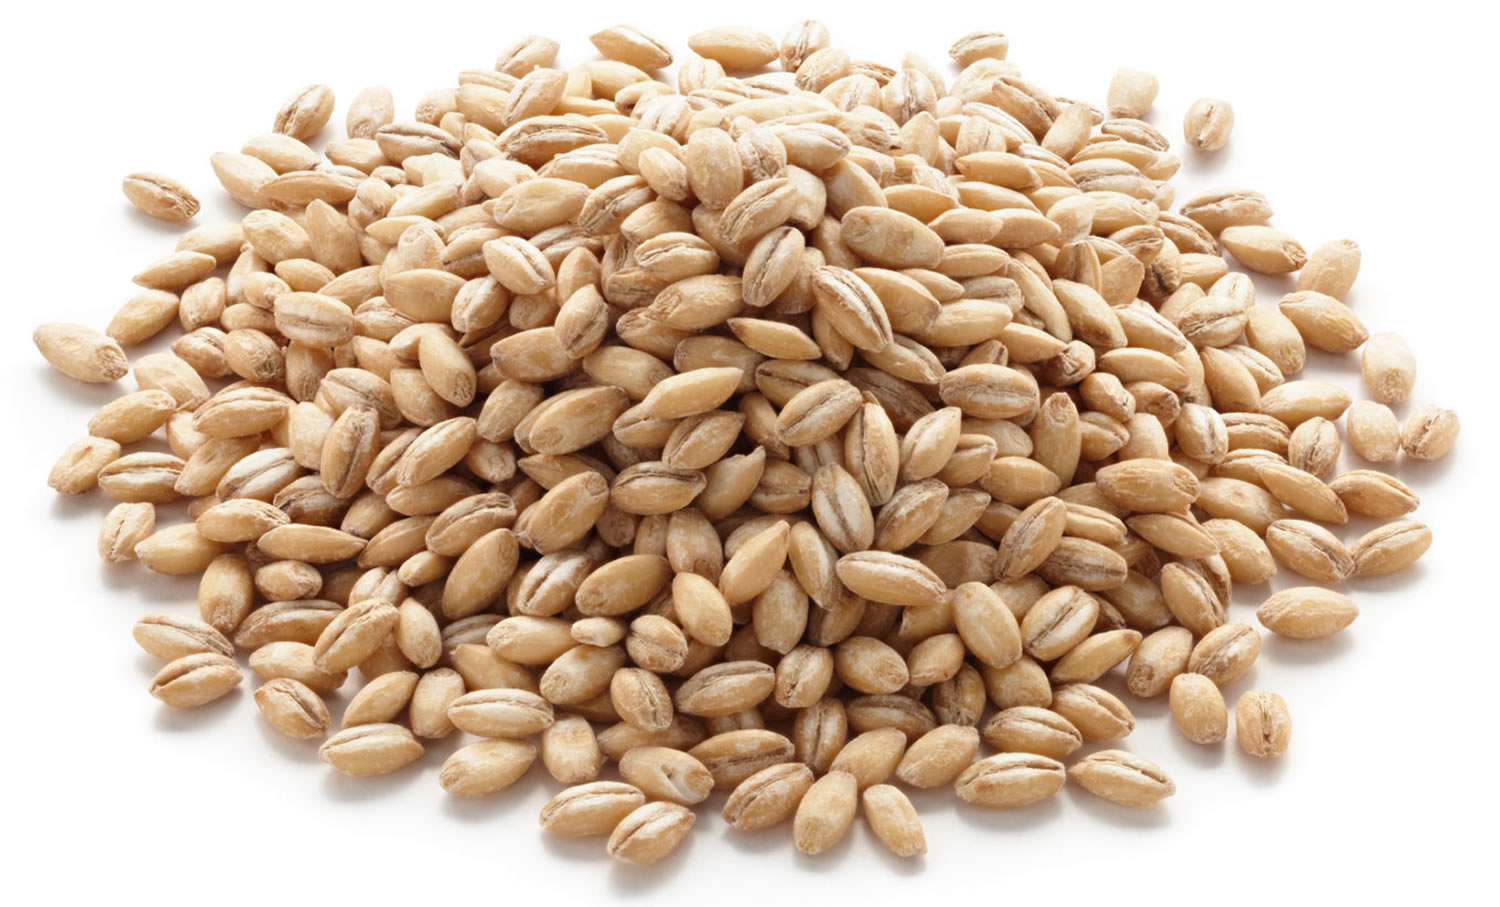 Barley grits: the benefits and harm. Barley grain from what is produced 13